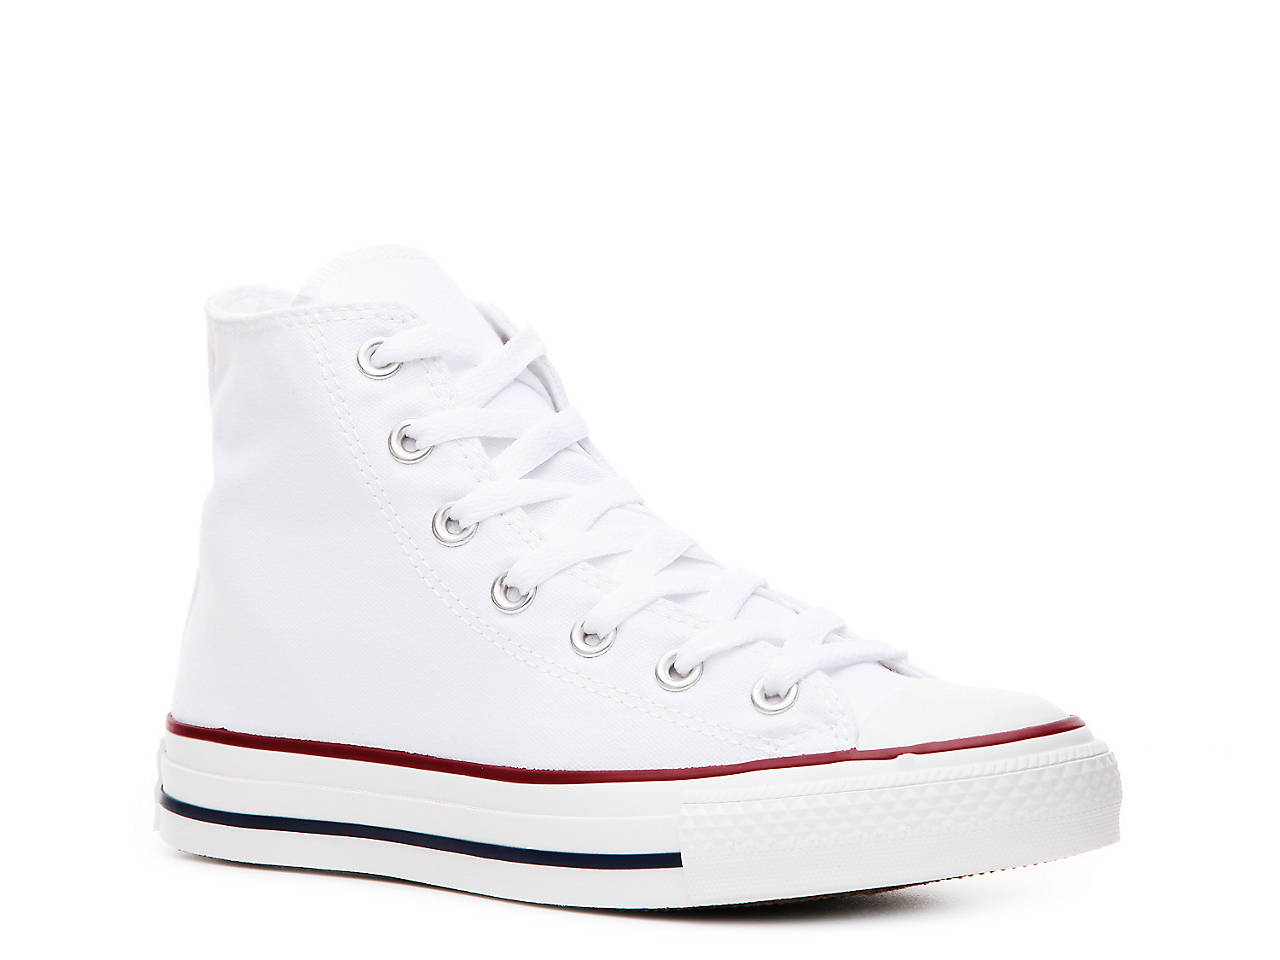 8216a216674f Converse Chuck Taylor All Star High-Top Sneaker - Women s Women s ...